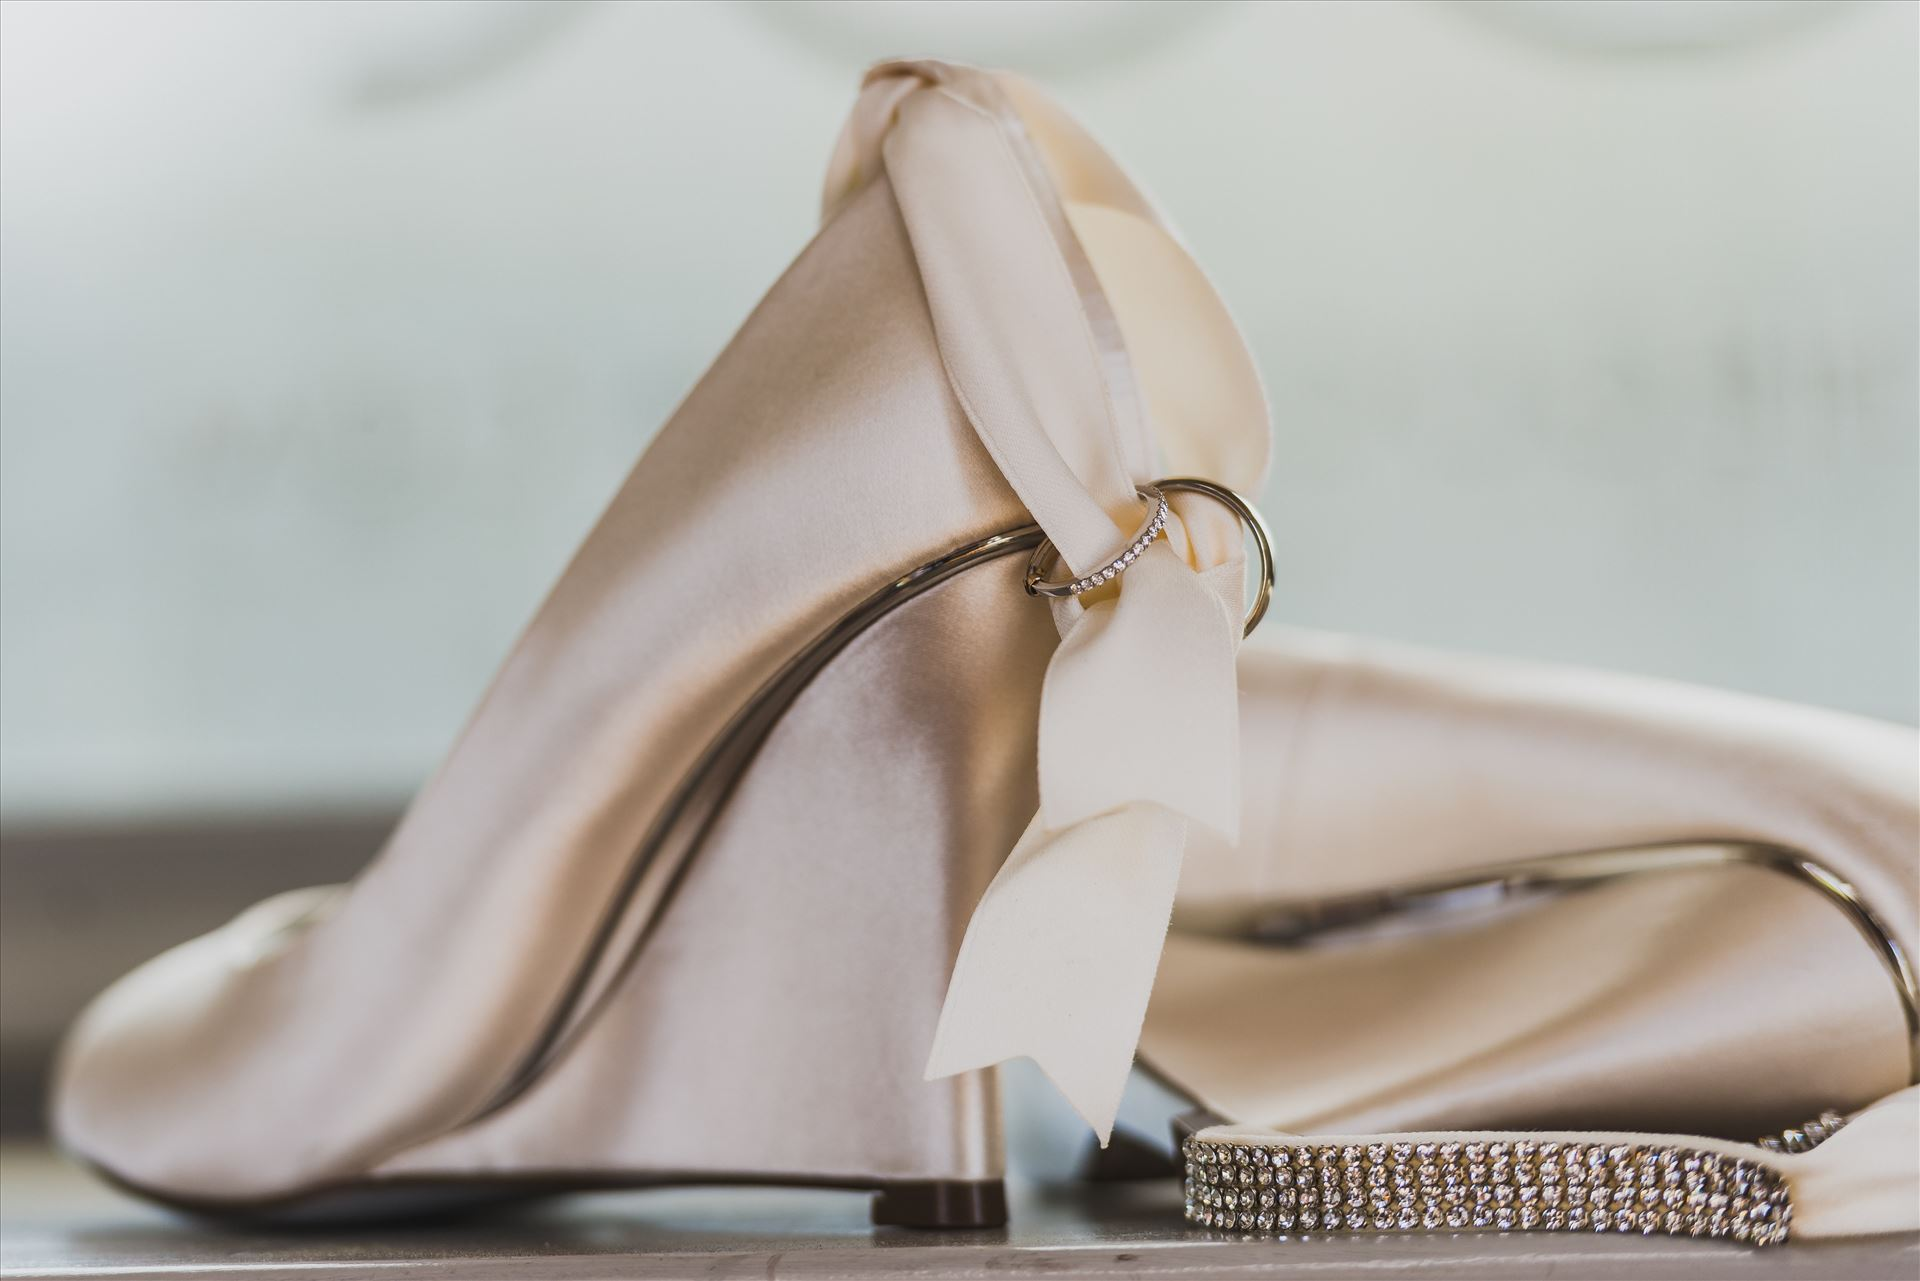 Kimpton Goodland Hotel Santa Barbara Goleta California Shoes with Rings -  by Sarah Williams